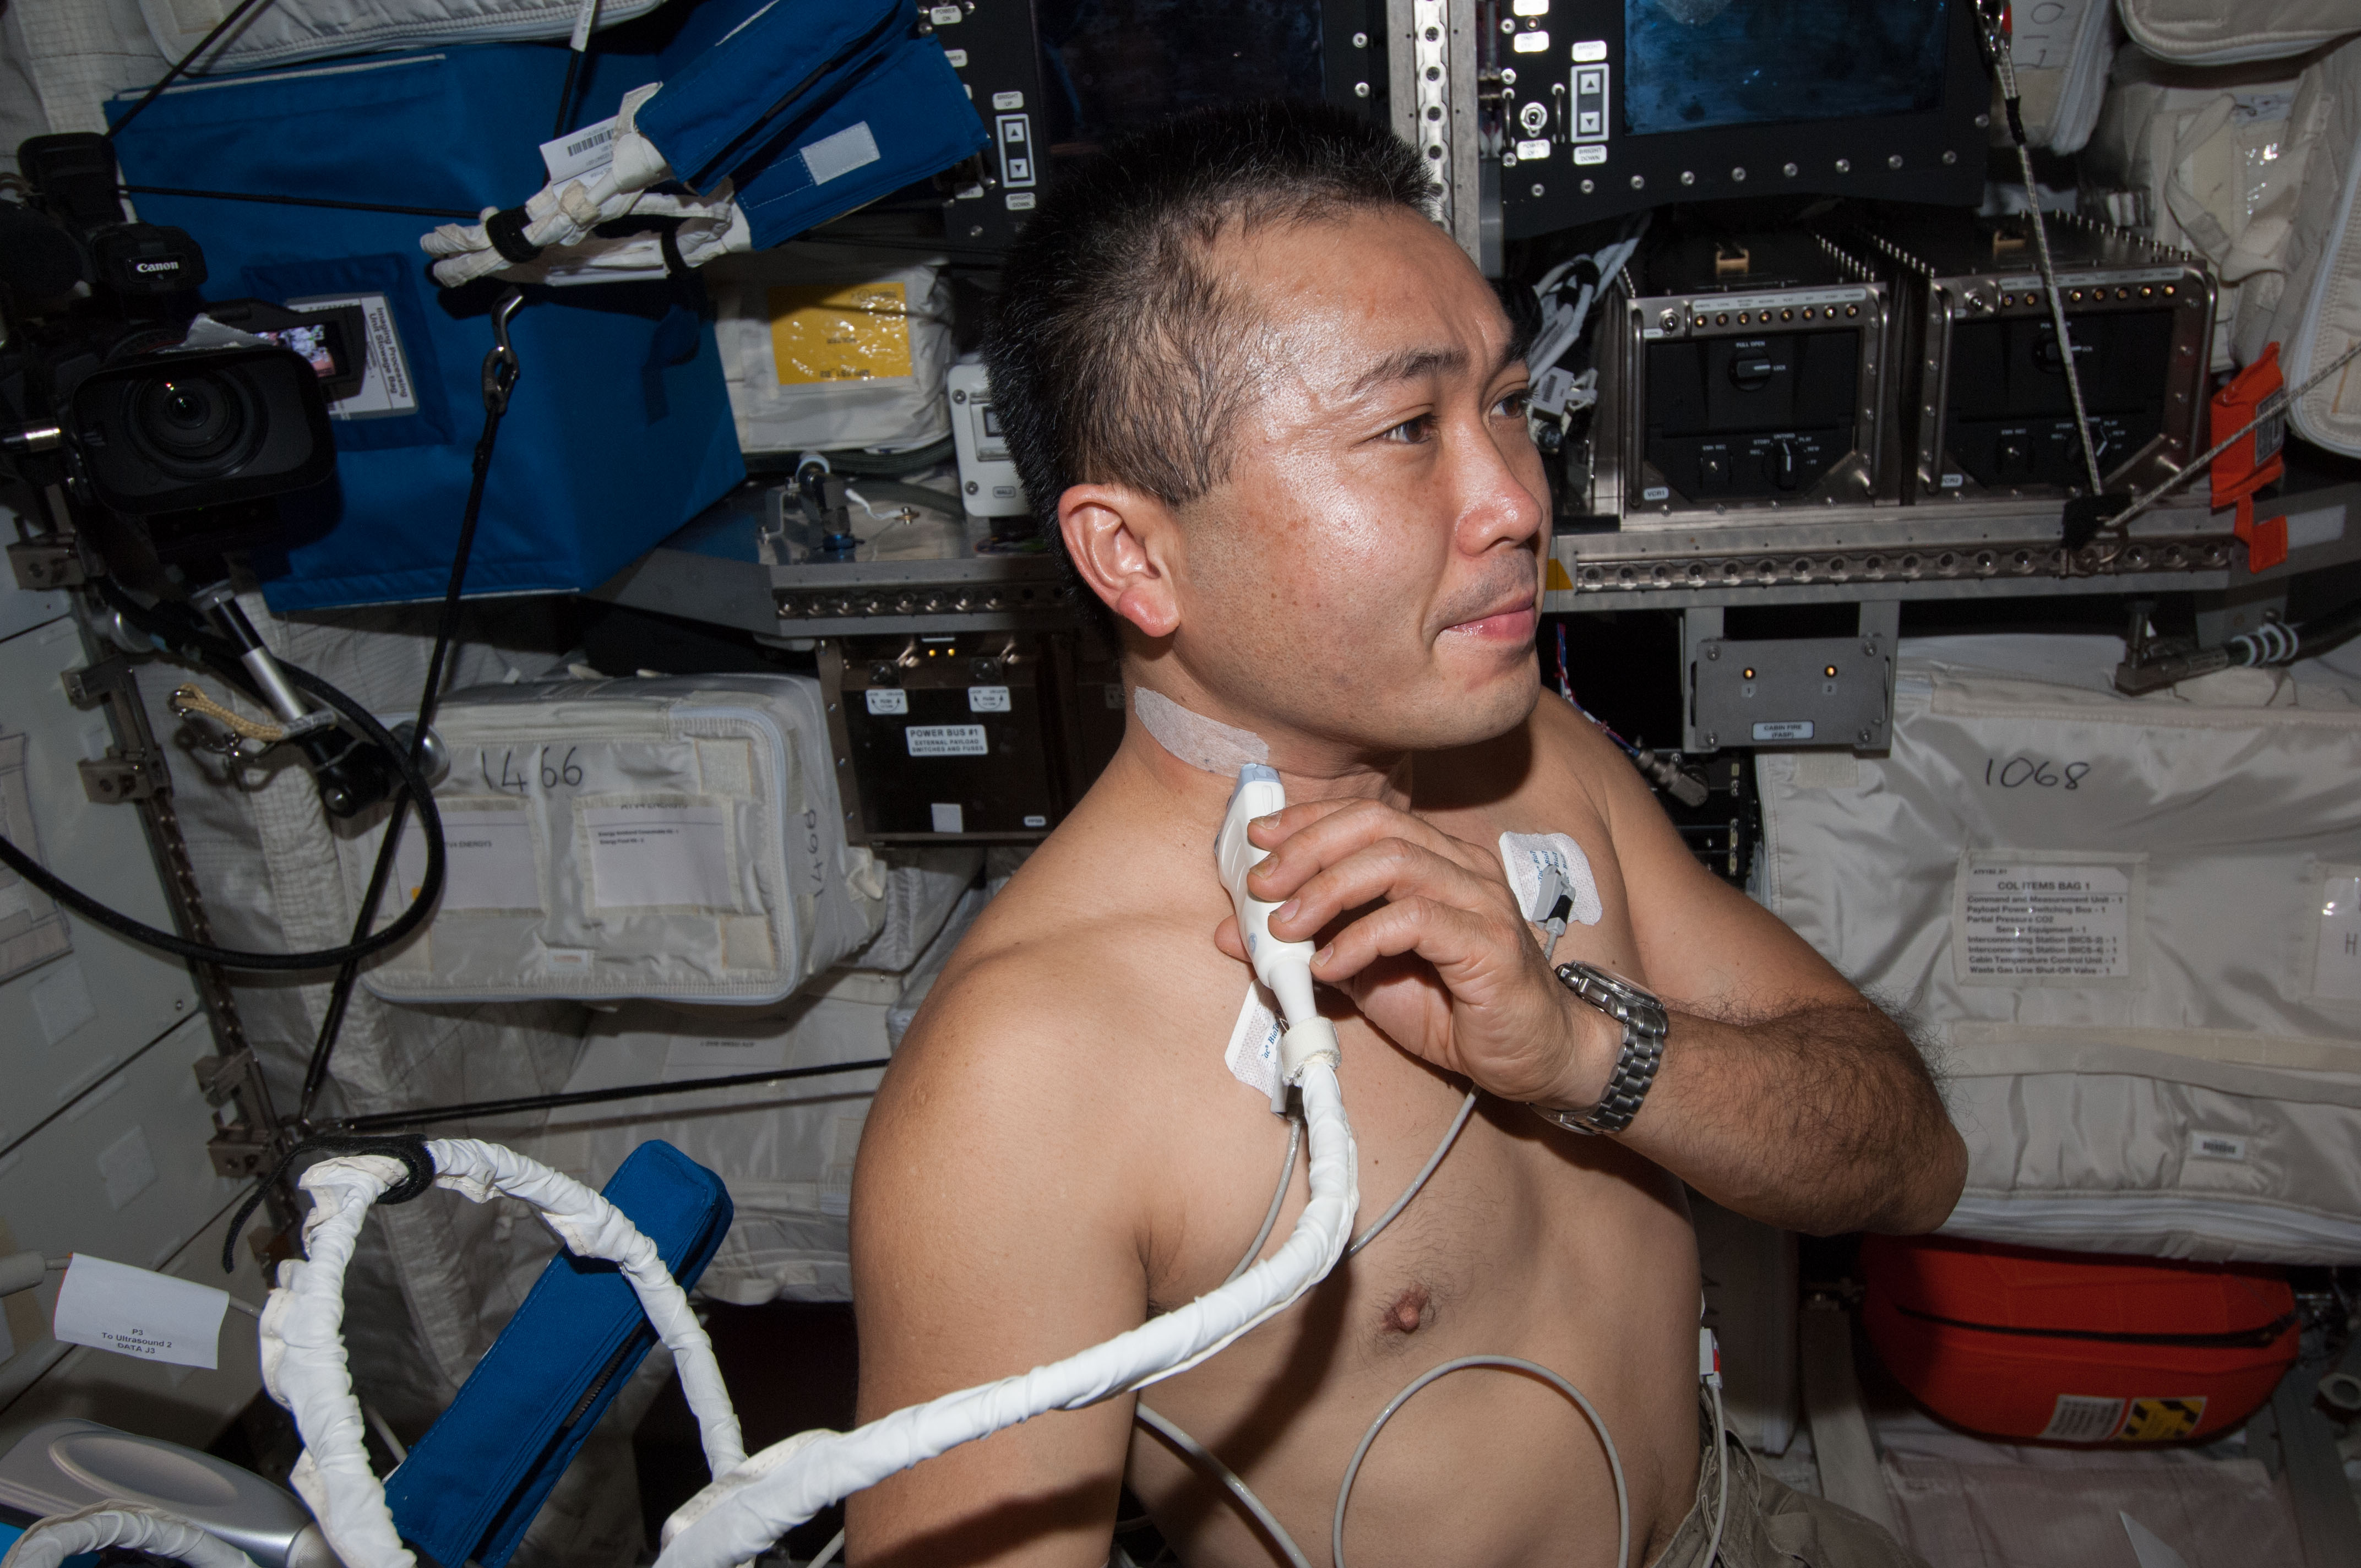 outer space station health - photo #27